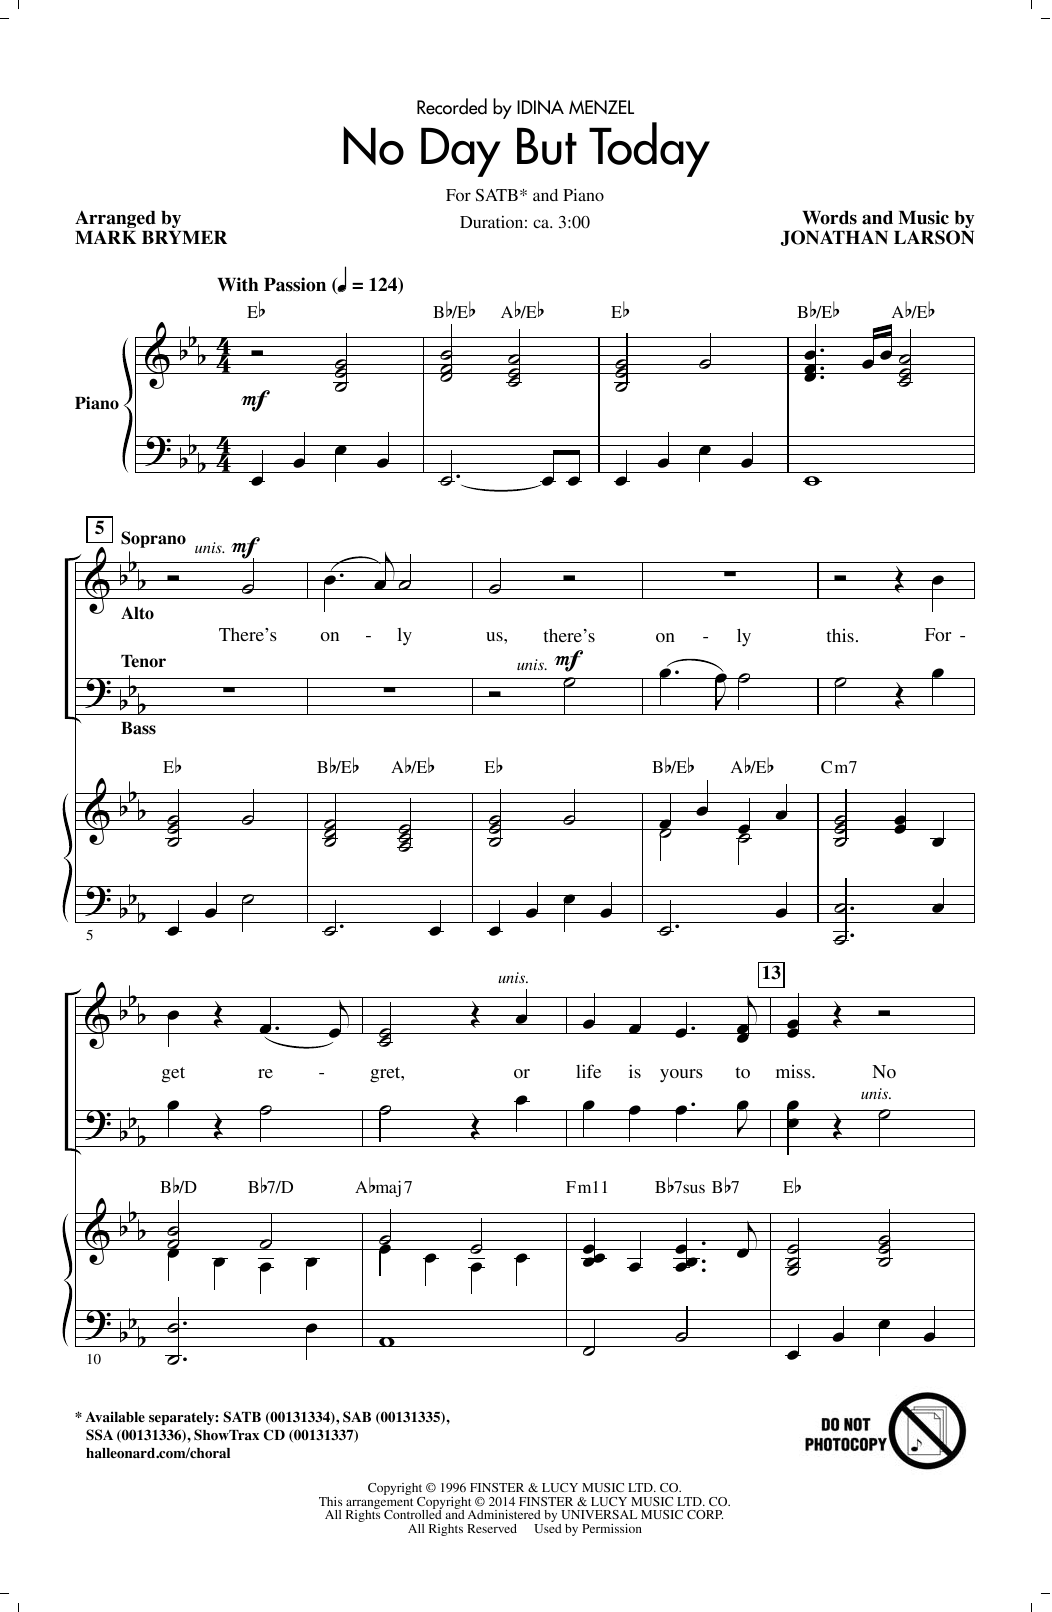 No Day But Today (SATB Choir)